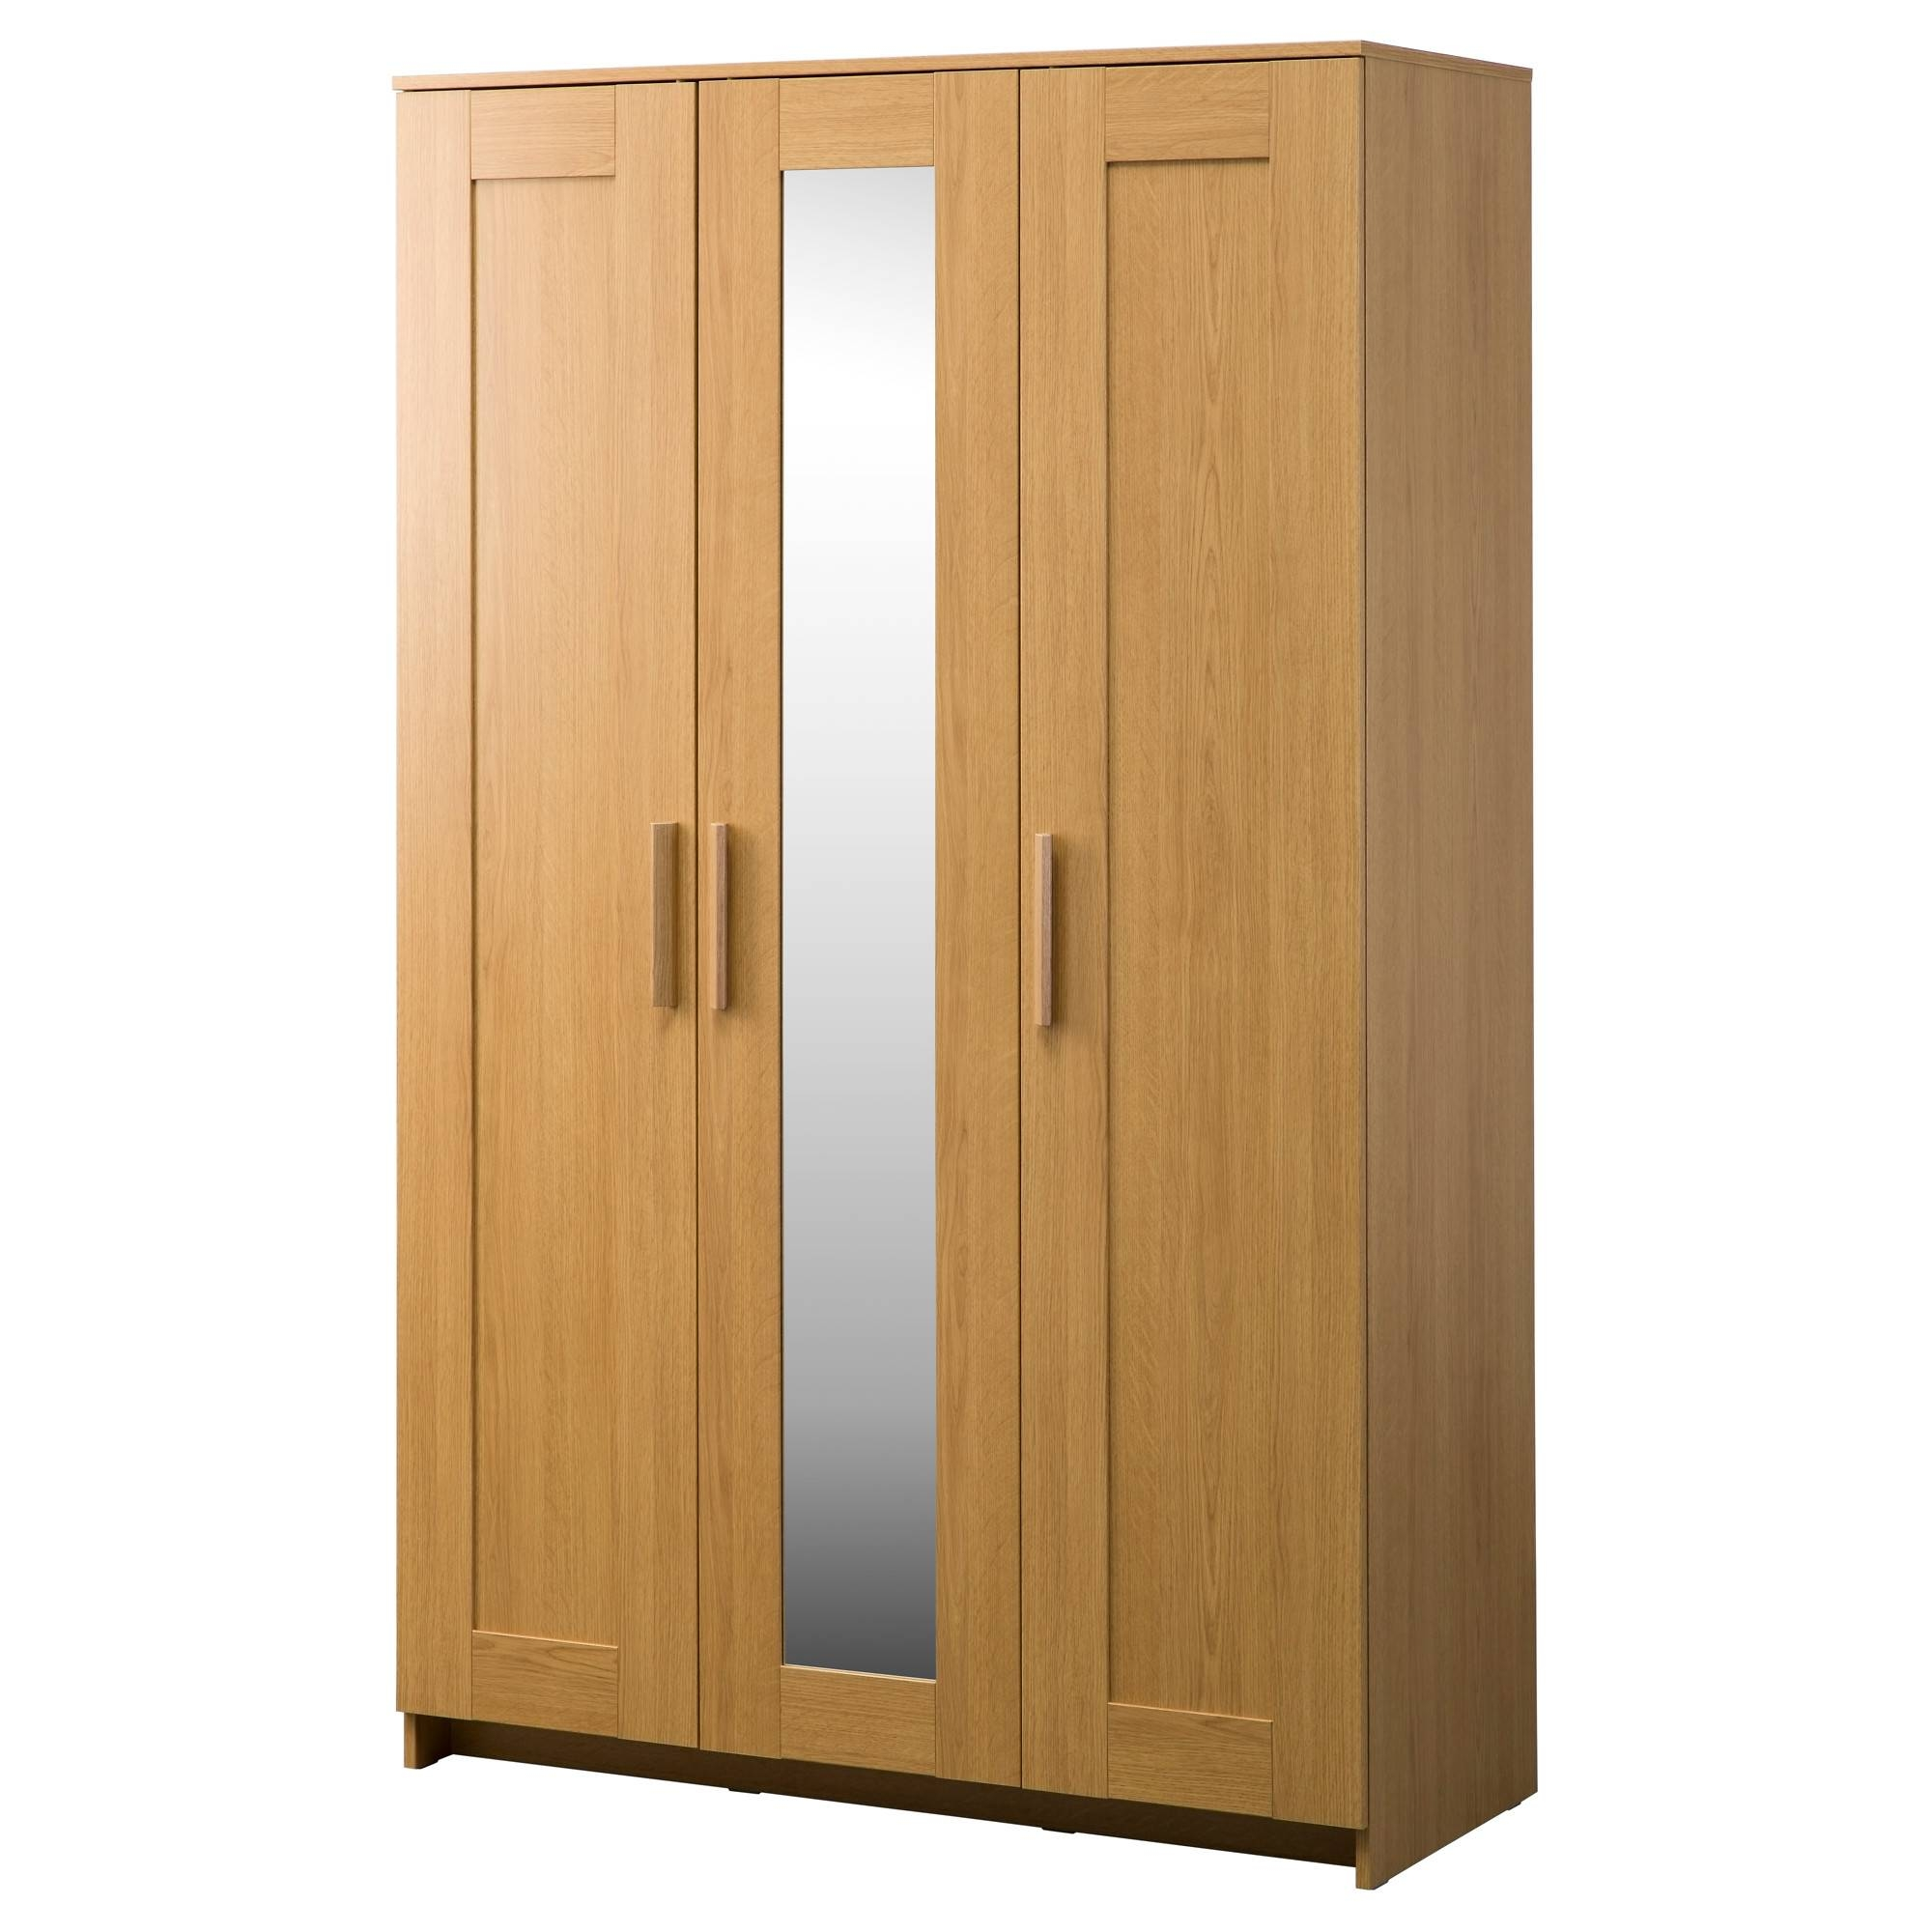 Wardrobes | Ikea Ireland – Dublin Intended For Double Rail Wardrobes (View 11 of 30)